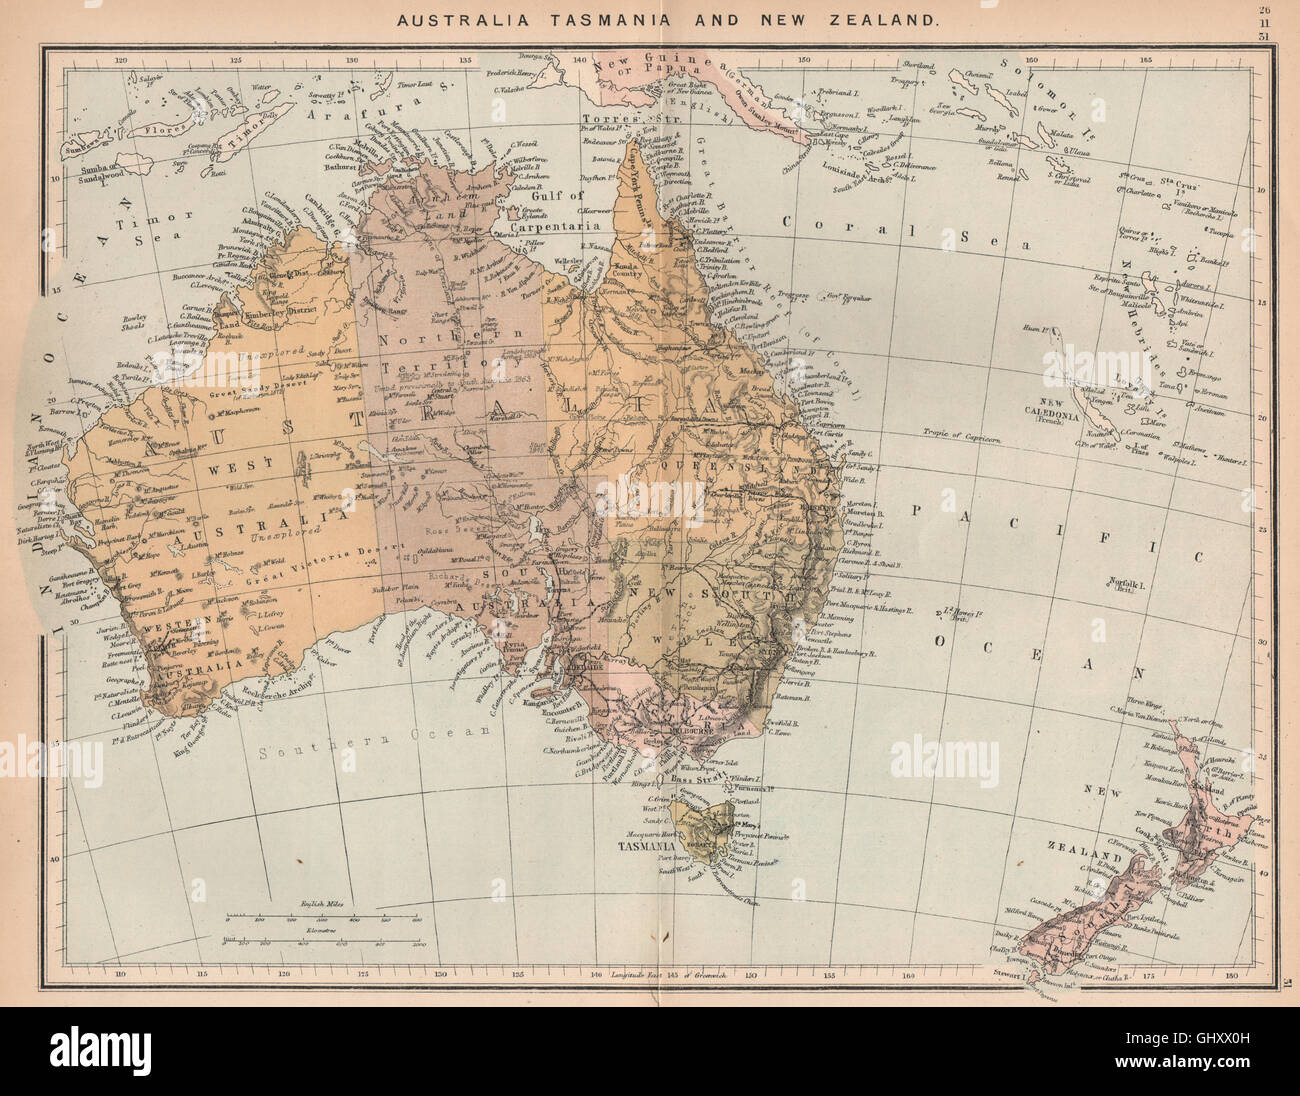 Map Of Australia Tasmania And New Zealand.Australia Tasmania And New Zealand Australasia 1885 Antique Map